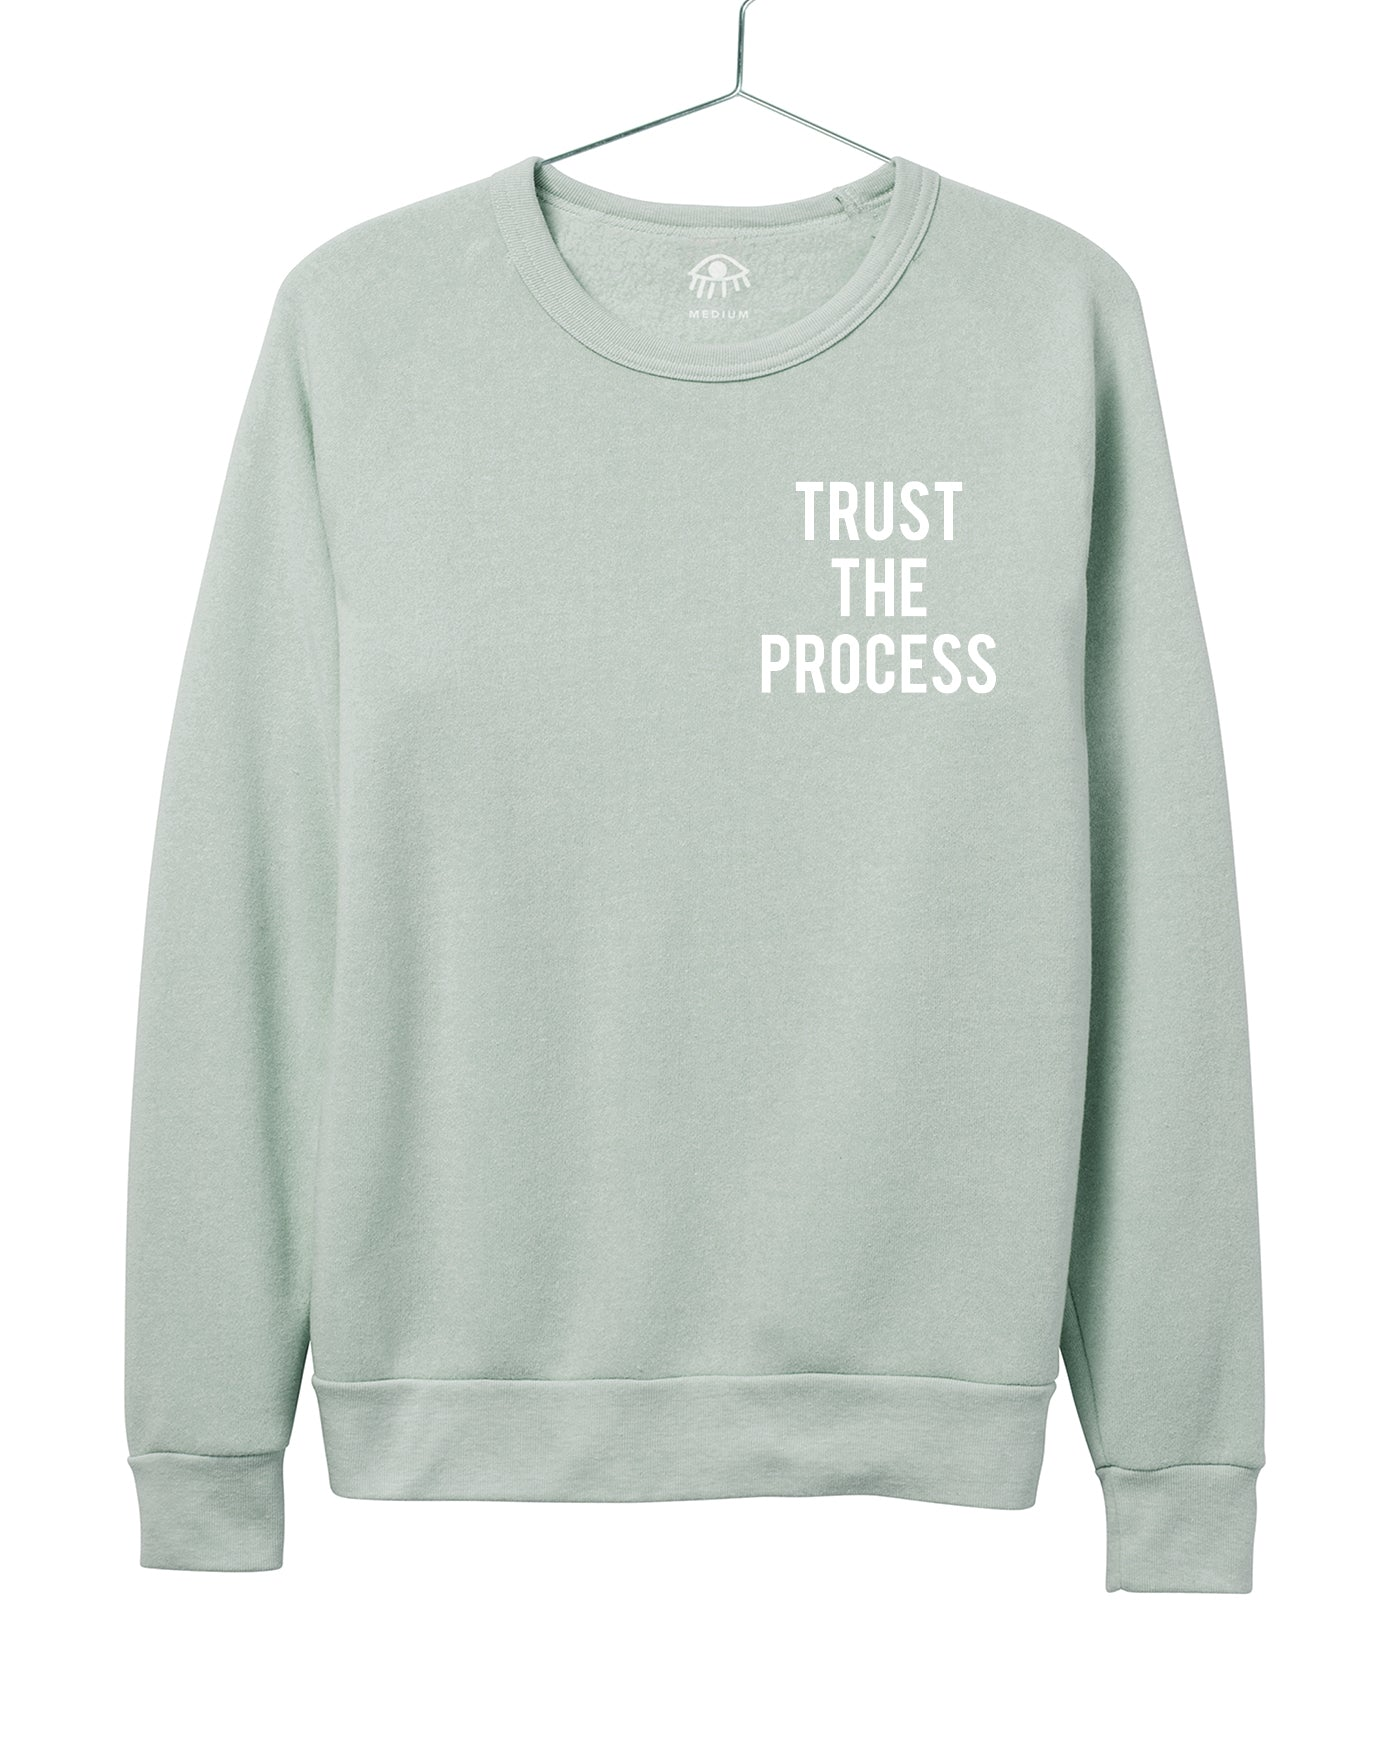 Trust the process Women's Crewneck